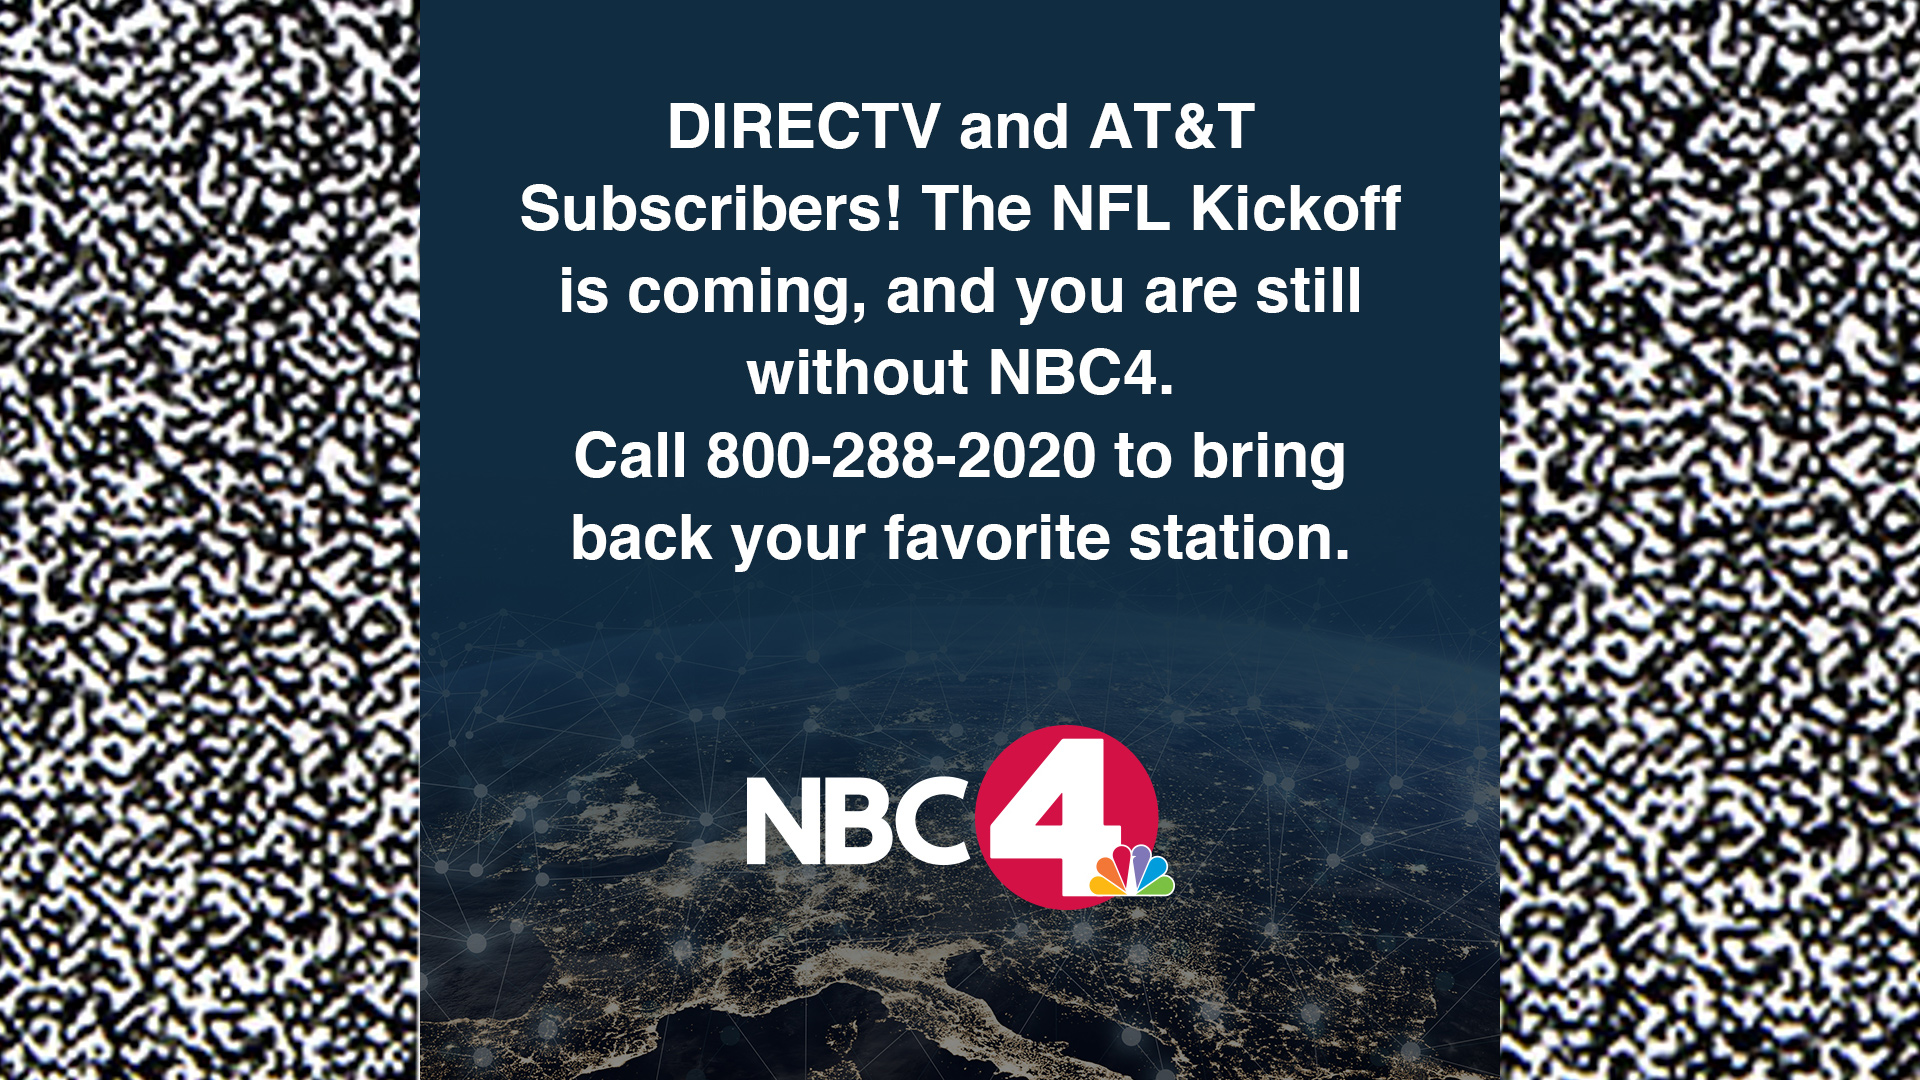 What's the latest on negotiations with AT&T U-verse/DIRECTV